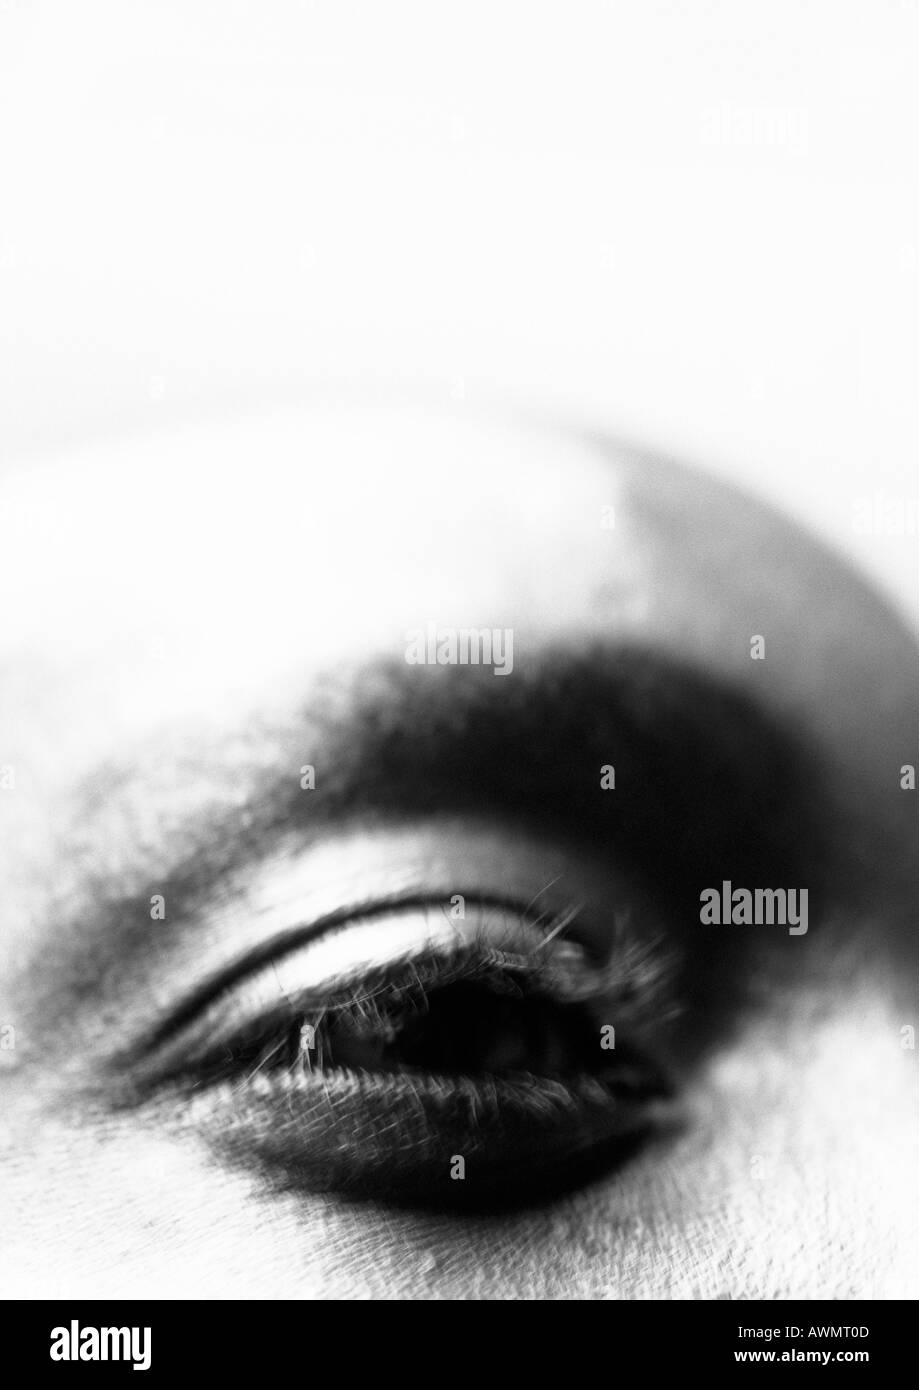 Man's eye, close up, black and white. - Stock Image